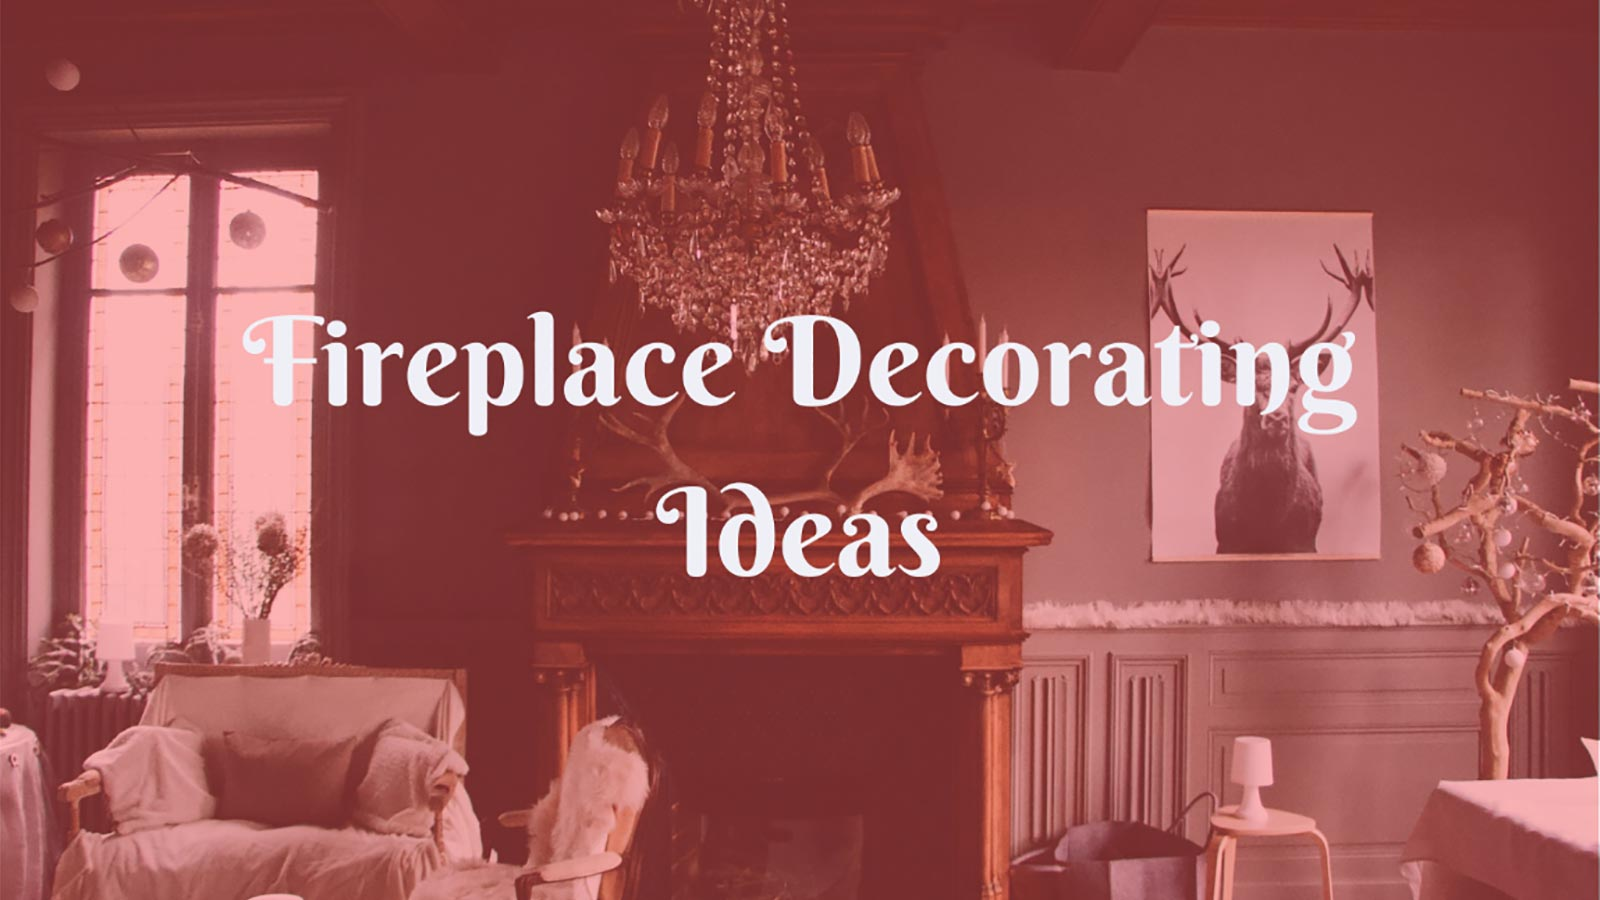 Fireplace Decorating Ideas for the Winter Season